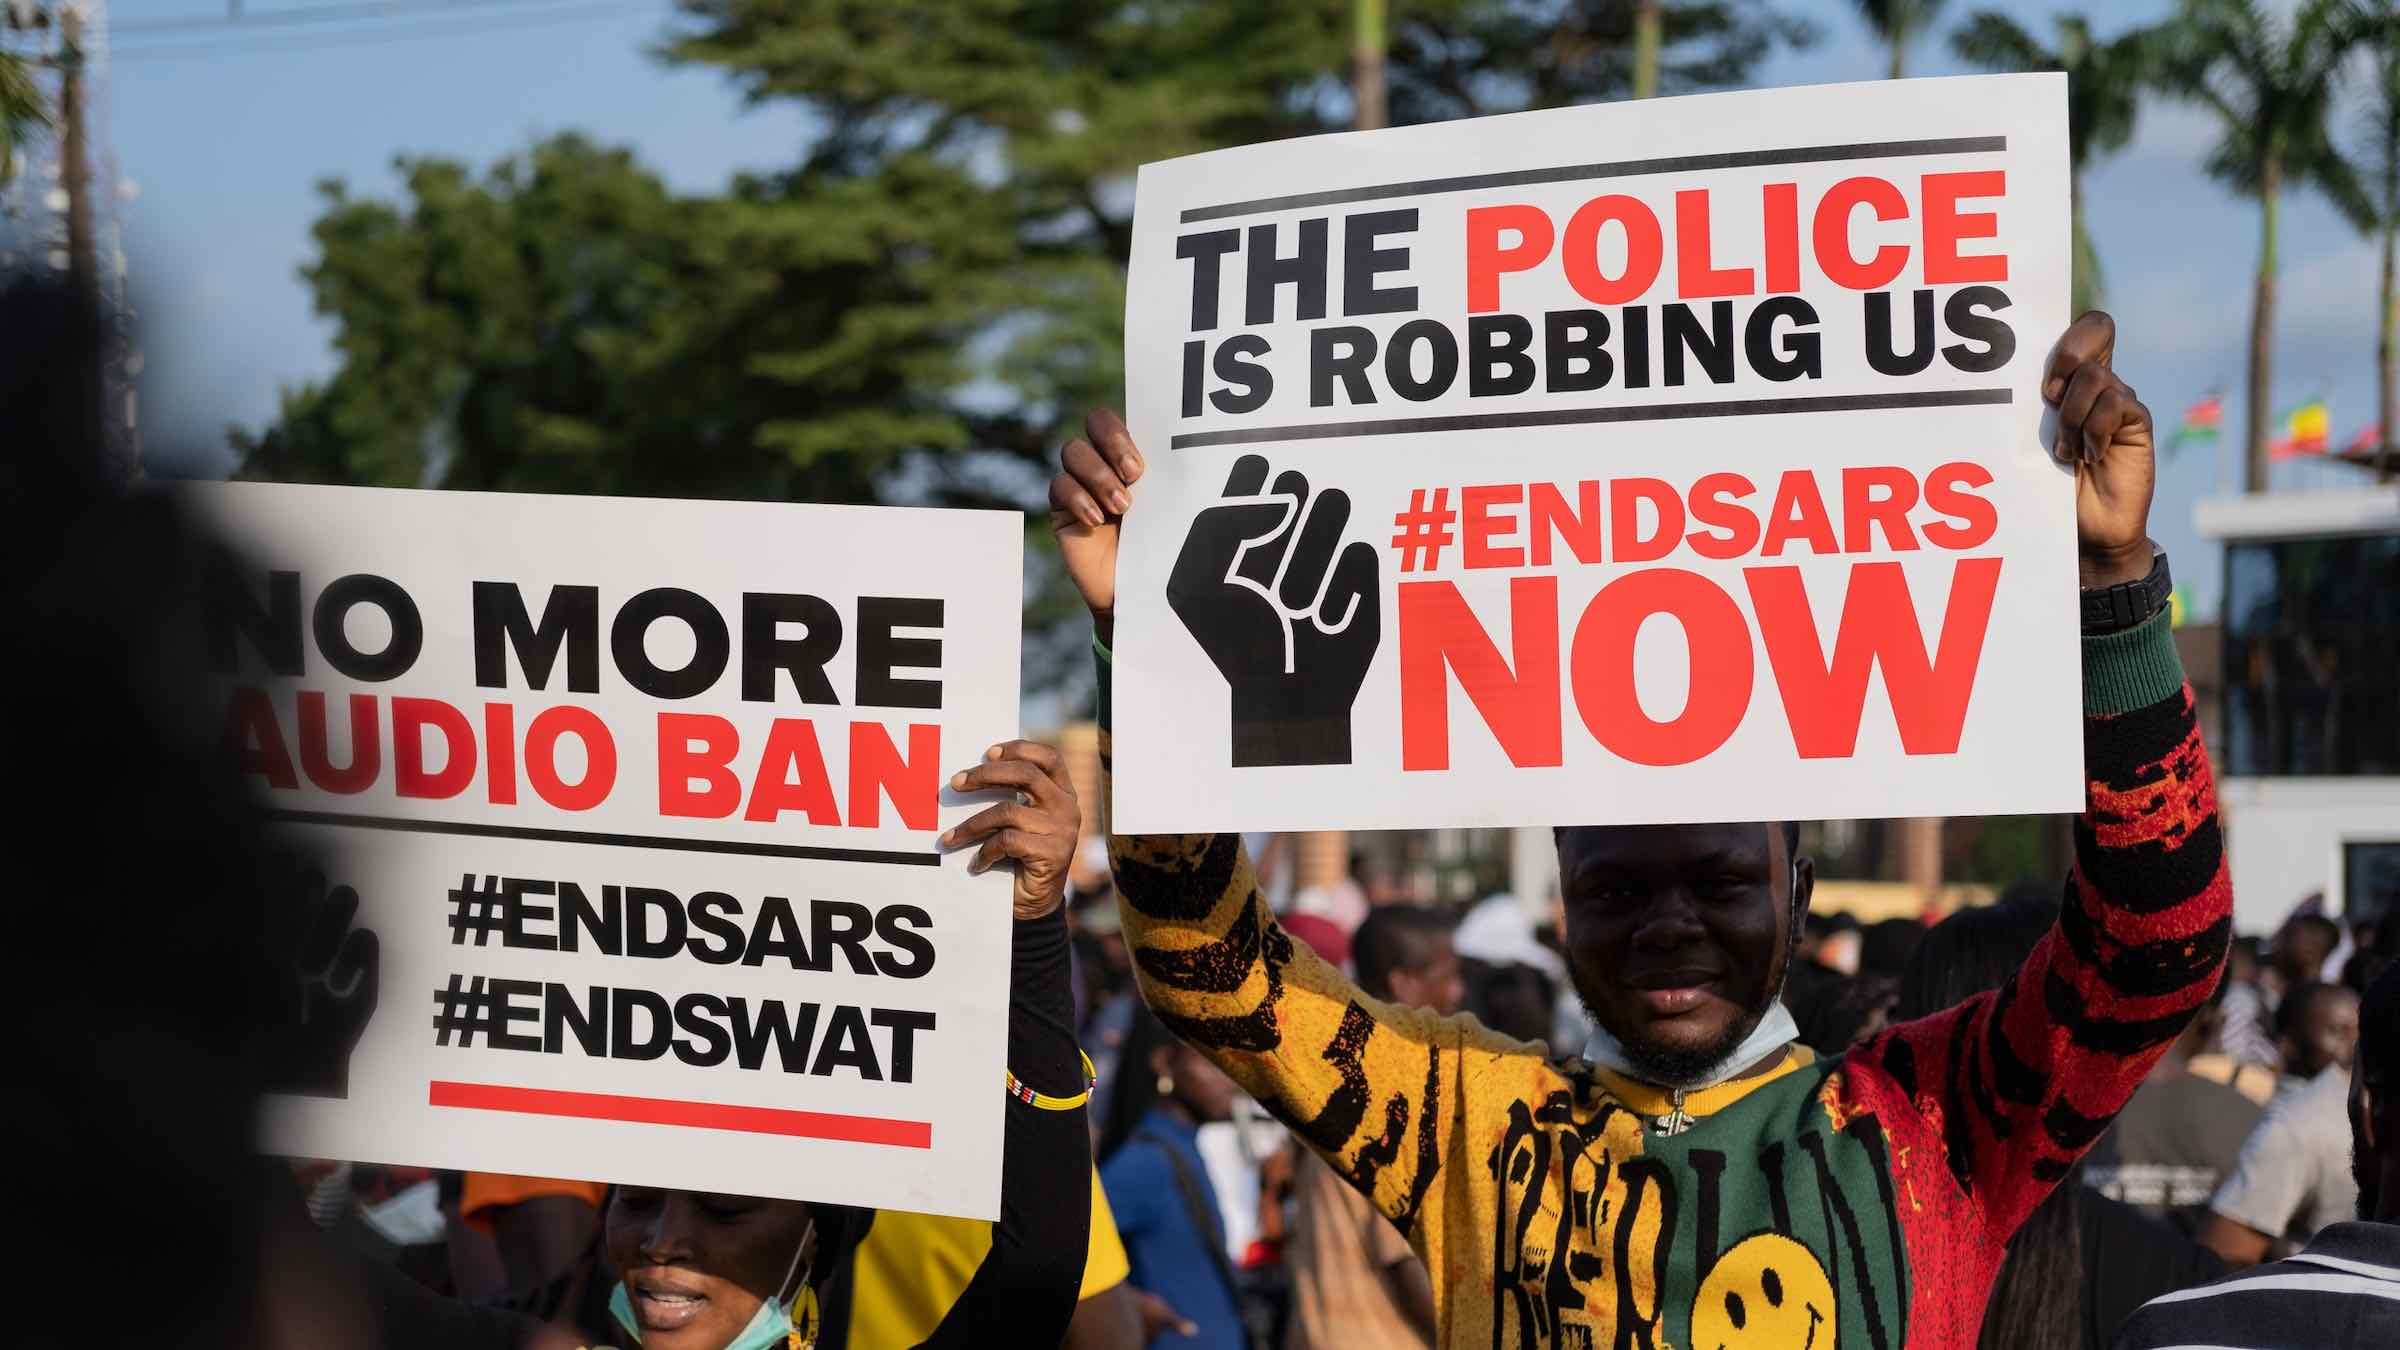 An #EndSARS demonstration in Nigeria